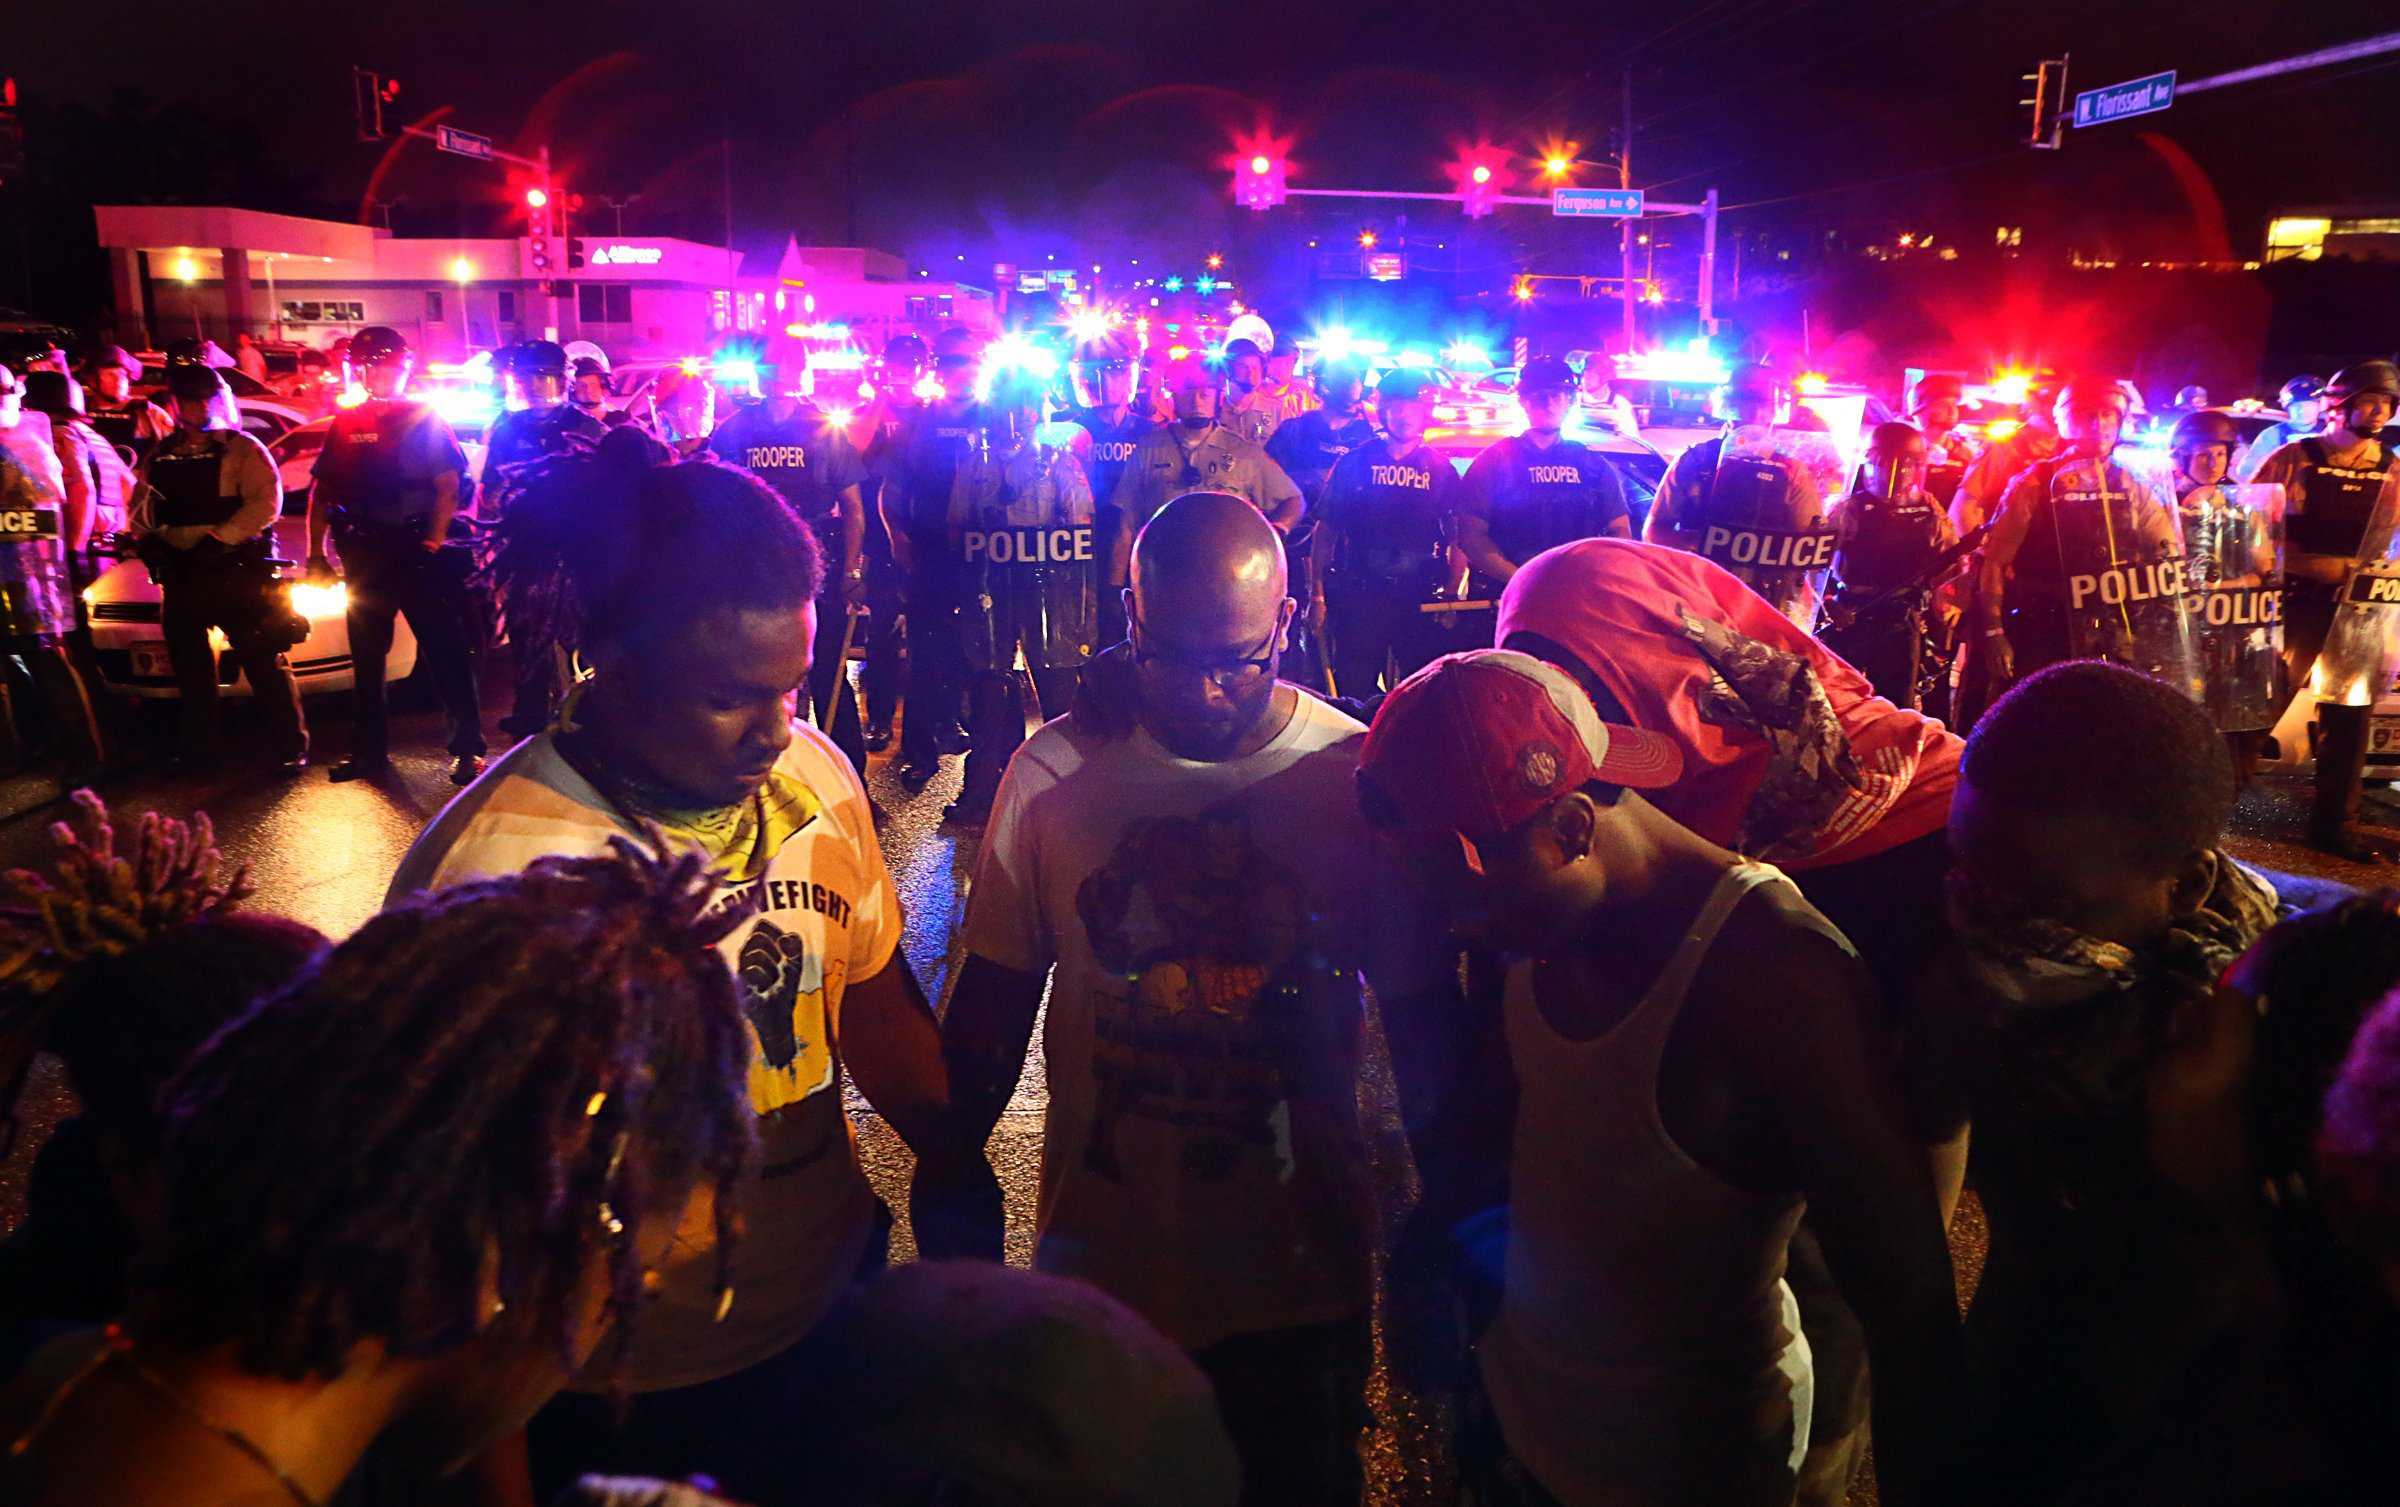 Protesters pray before confronting St. Louis County police officers lined up on West Florissant Avenue, on the anniversary of the police shooting of Michael Brown, in Ferguson, Mo. on Aug. 9, 2015.